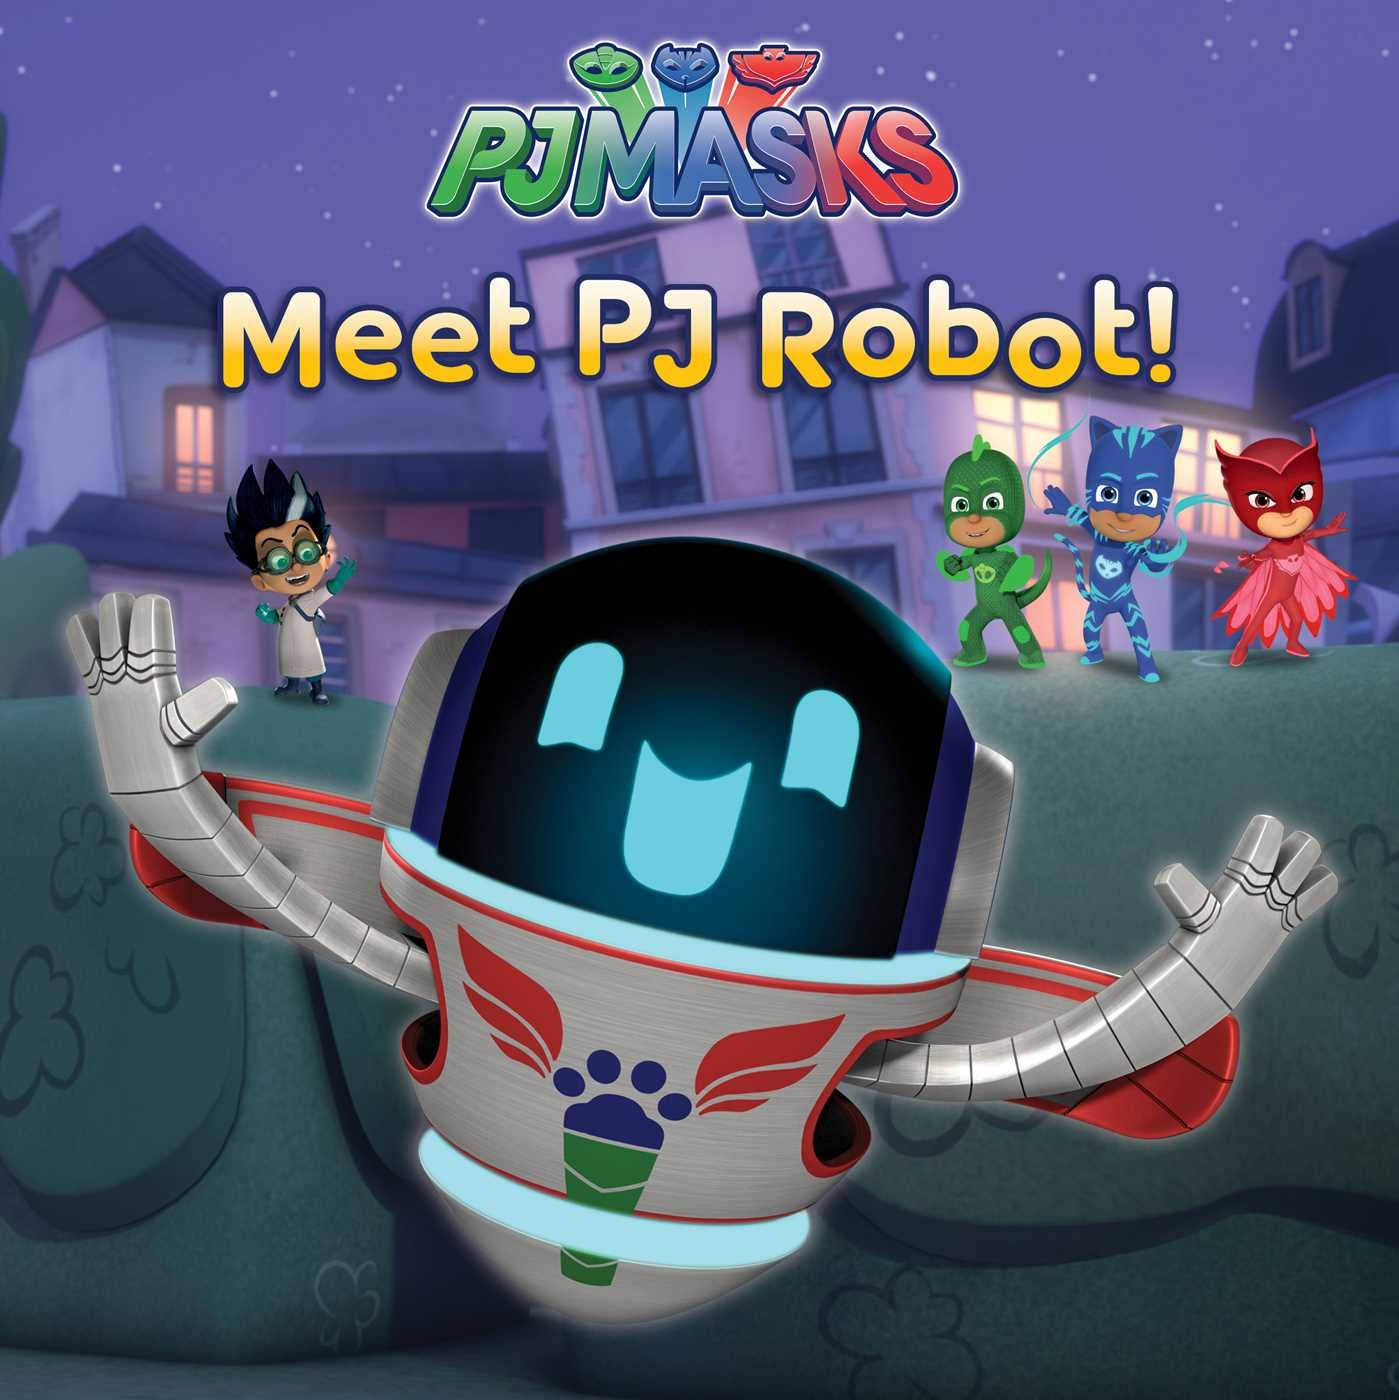 Amazon.com: Meet PJ Robot! (PJ Masks) (9781534430266): Natalie Shaw: Books